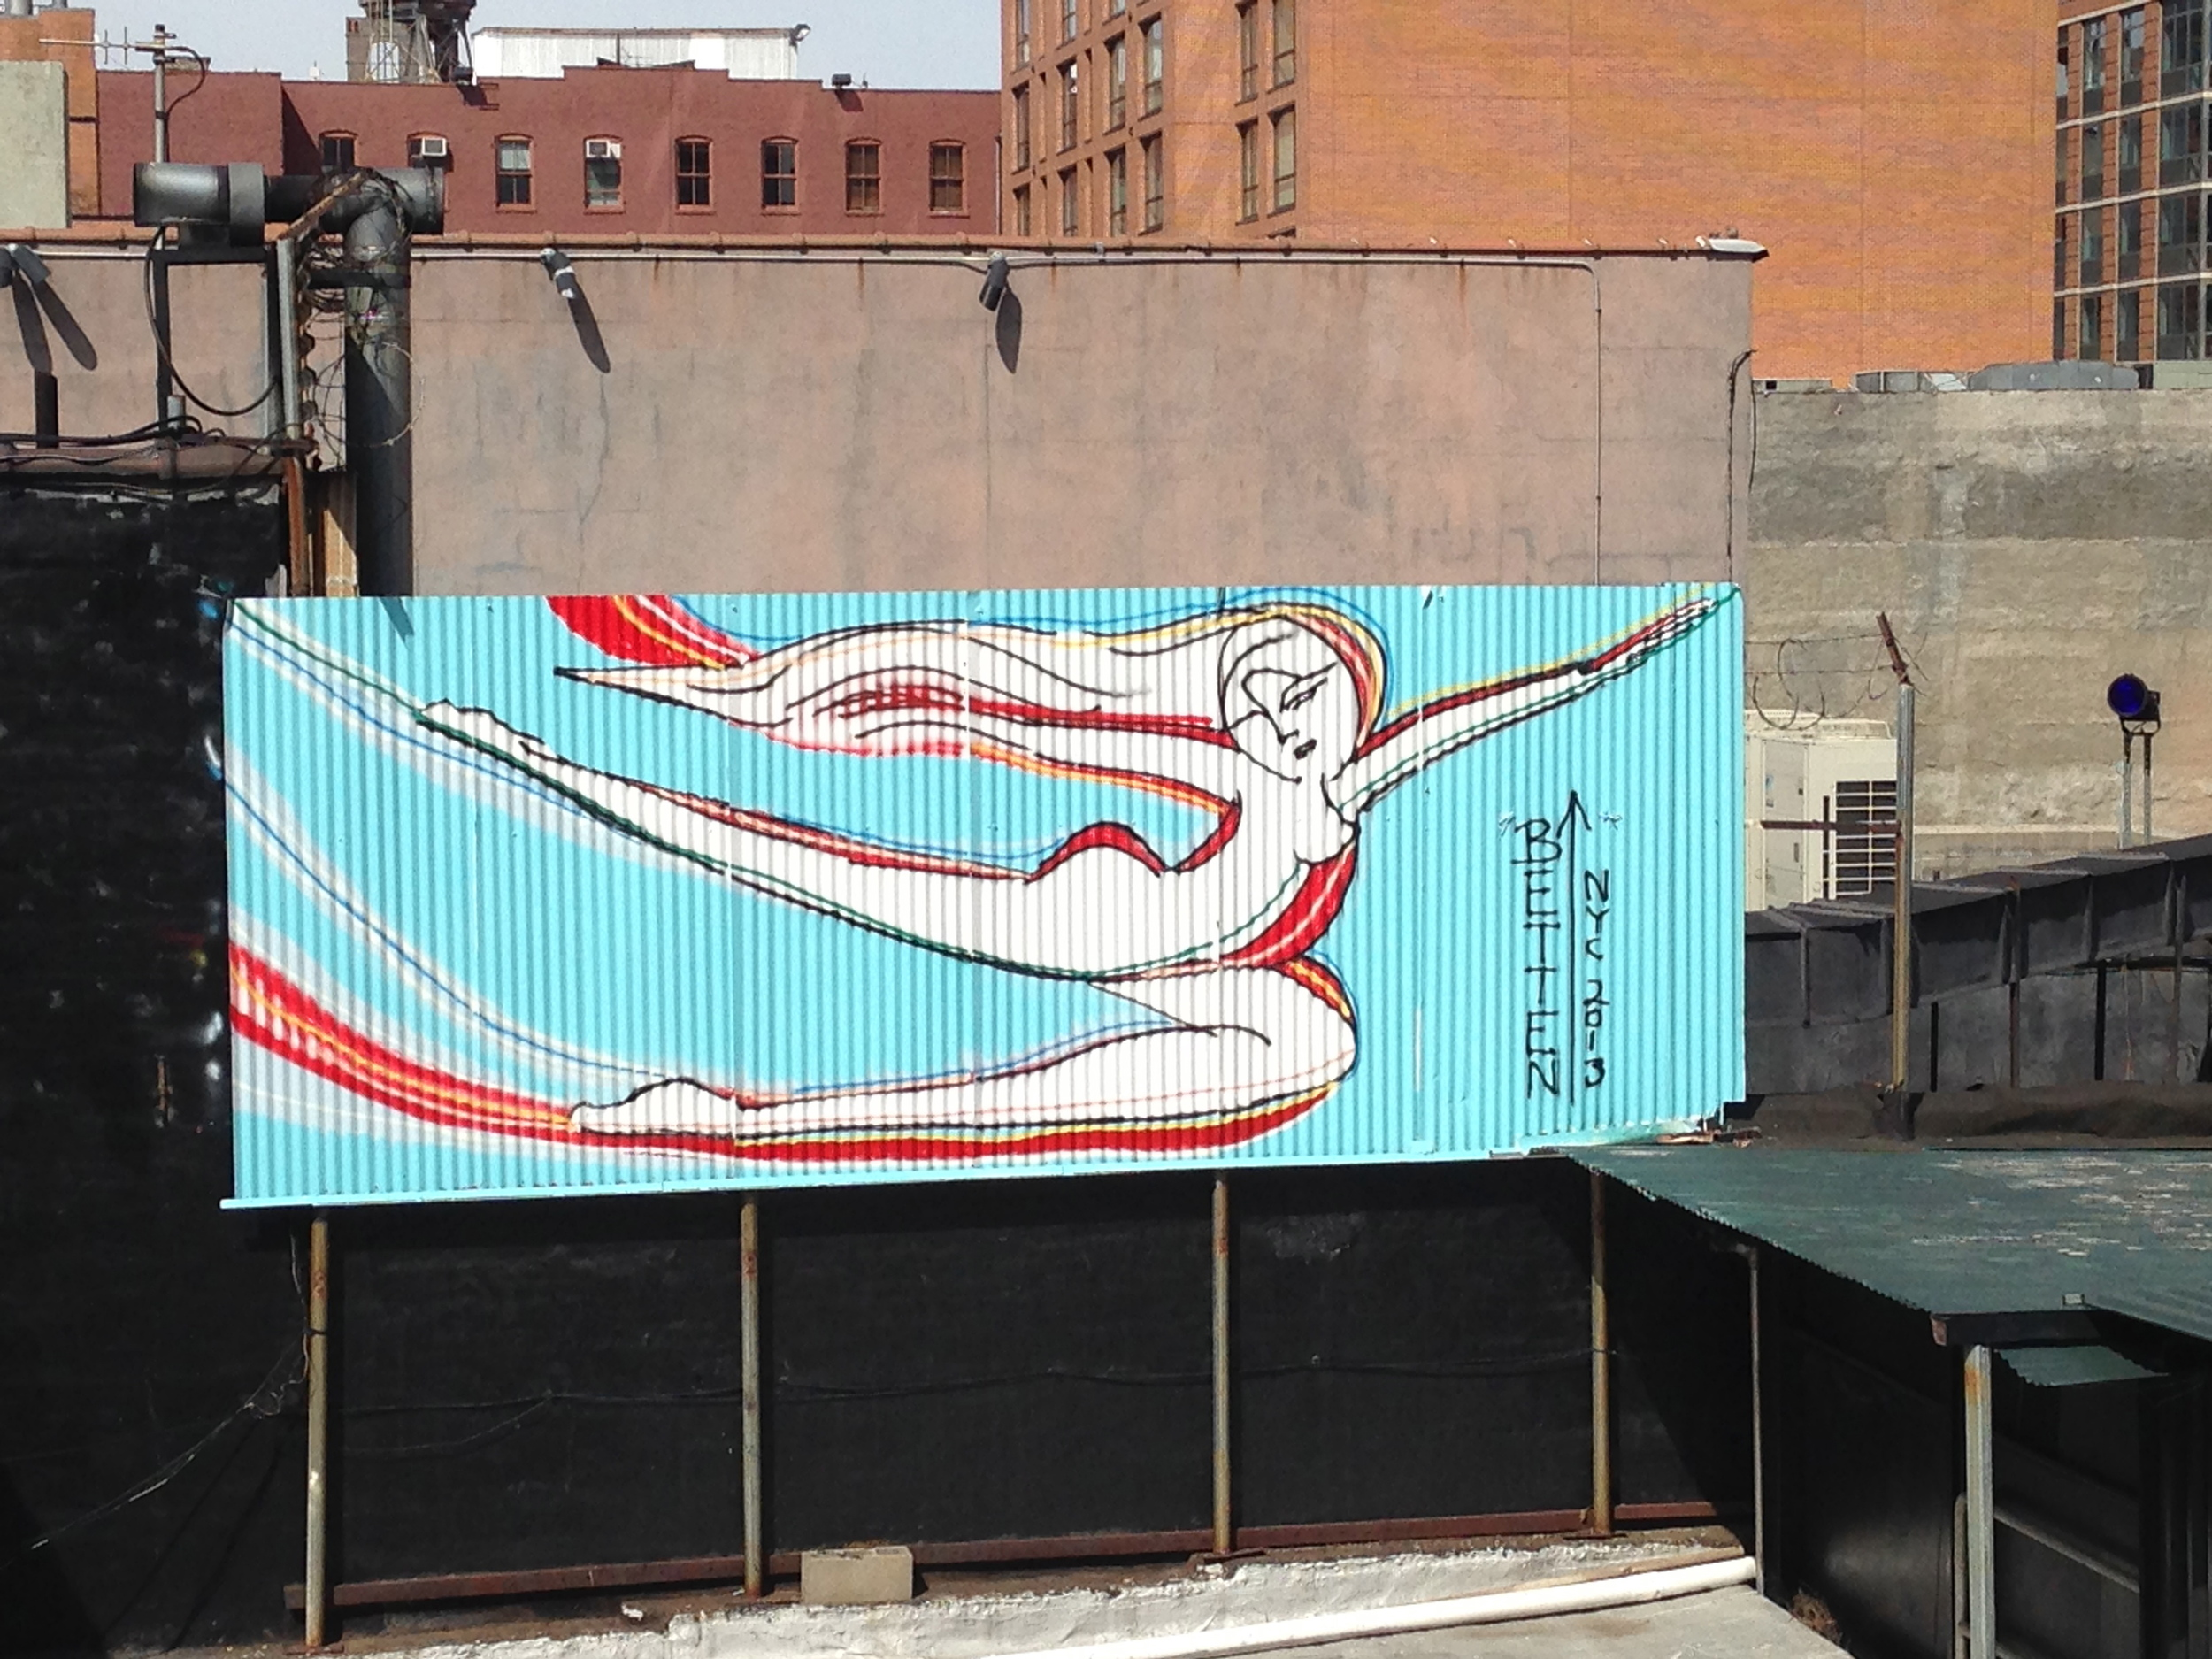 Public art from the High Line